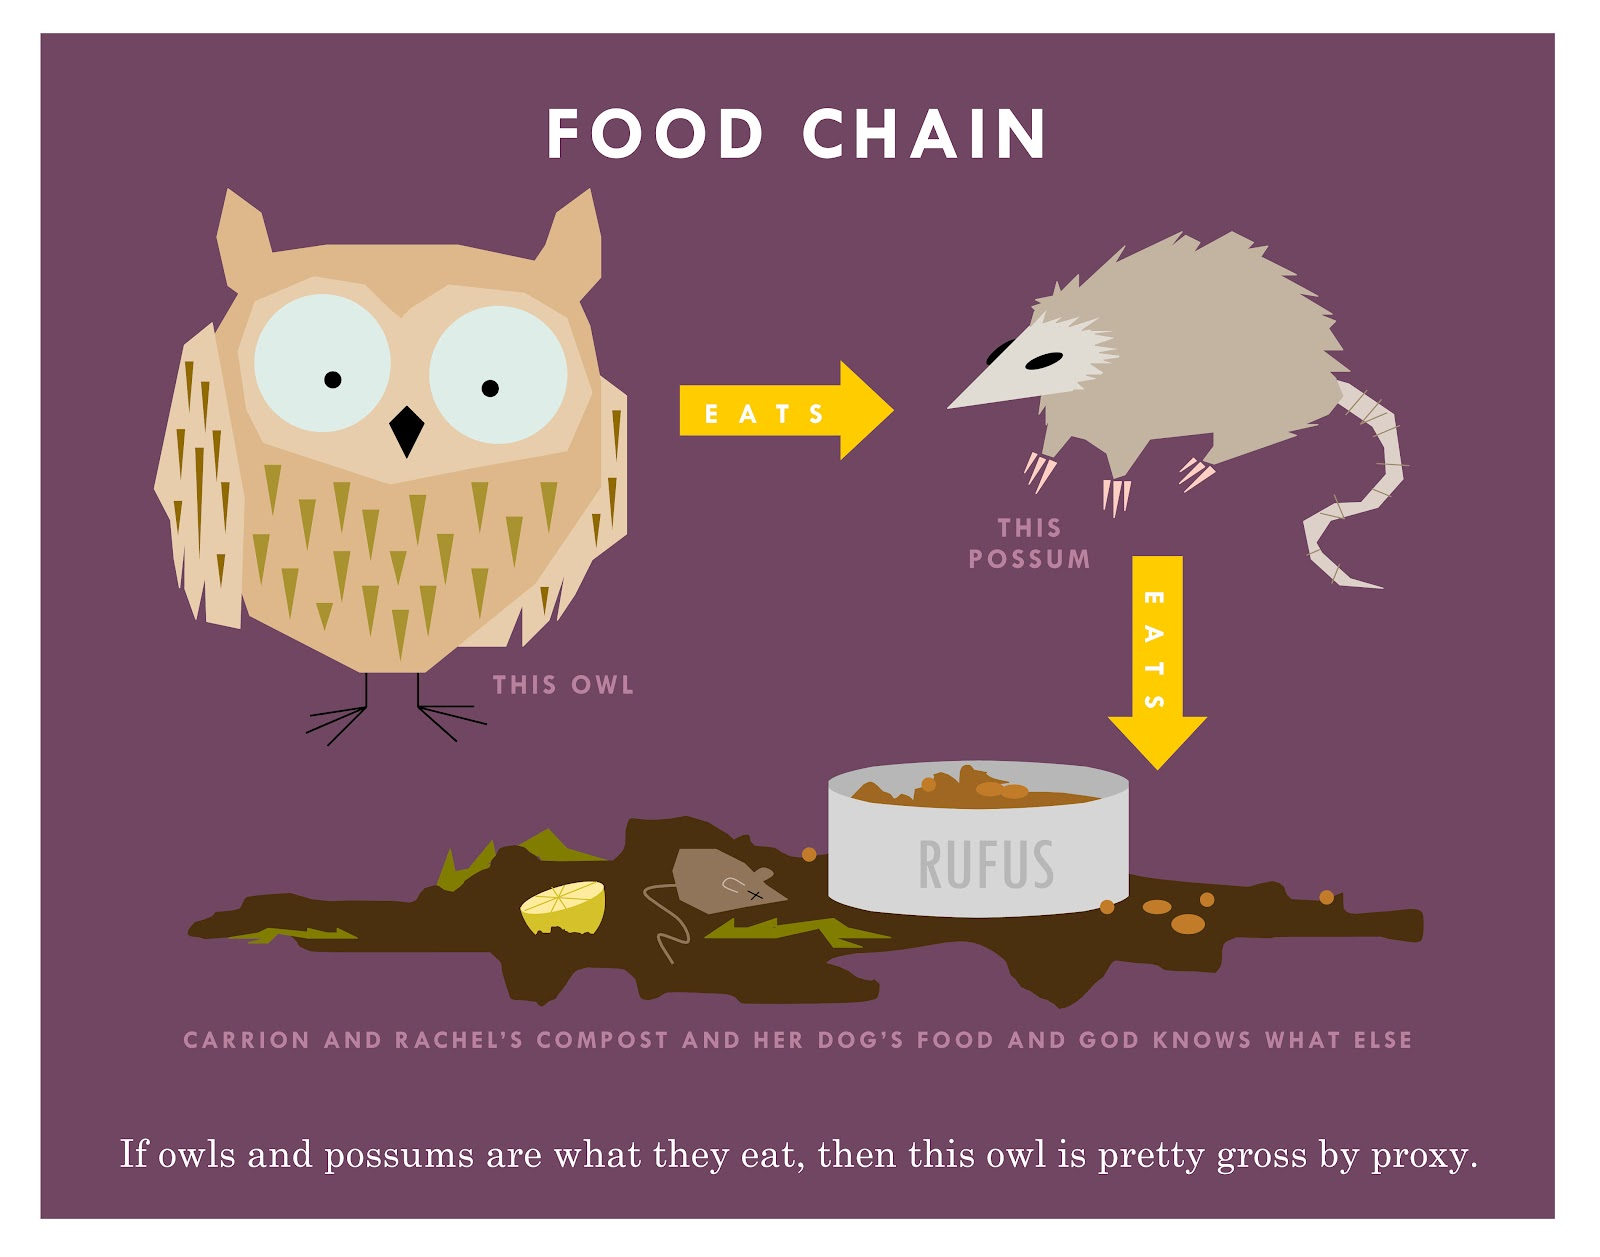 This Owl Food Chain The Transitive Property